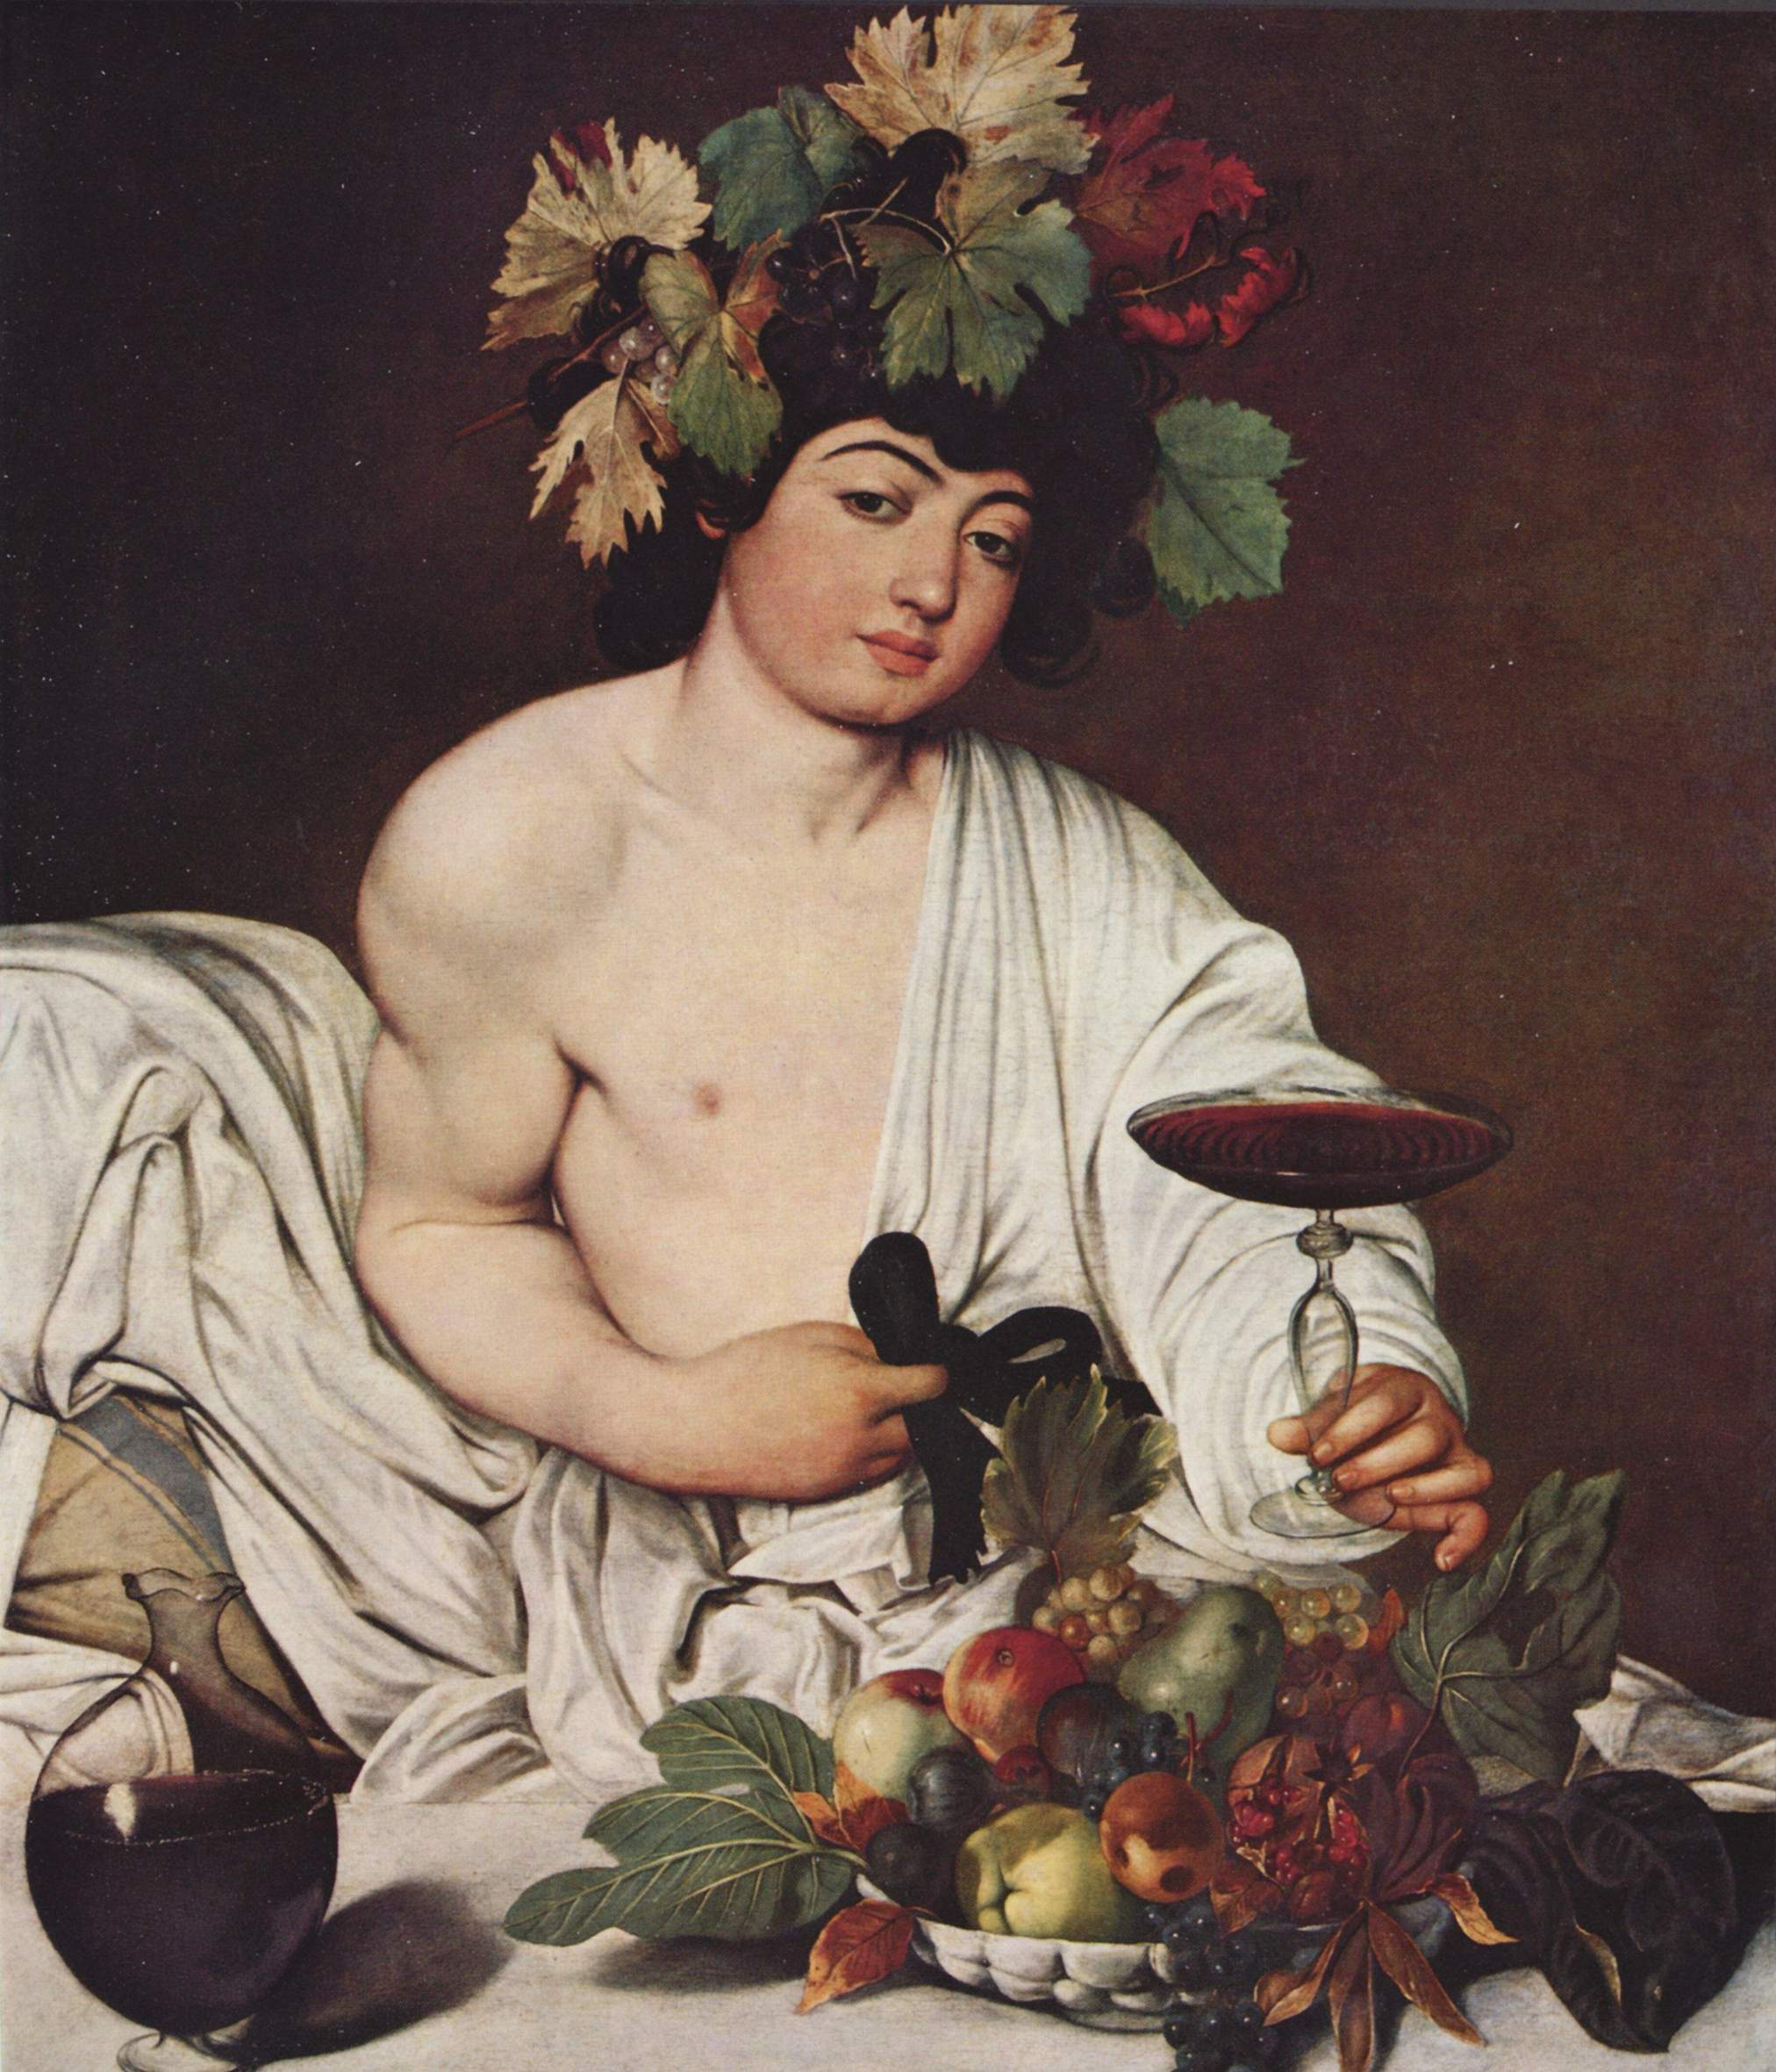 http://upload.wikimedia.org/wikipedia/commons/d/dd/Michelangelo_Caravaggio_007.jpg